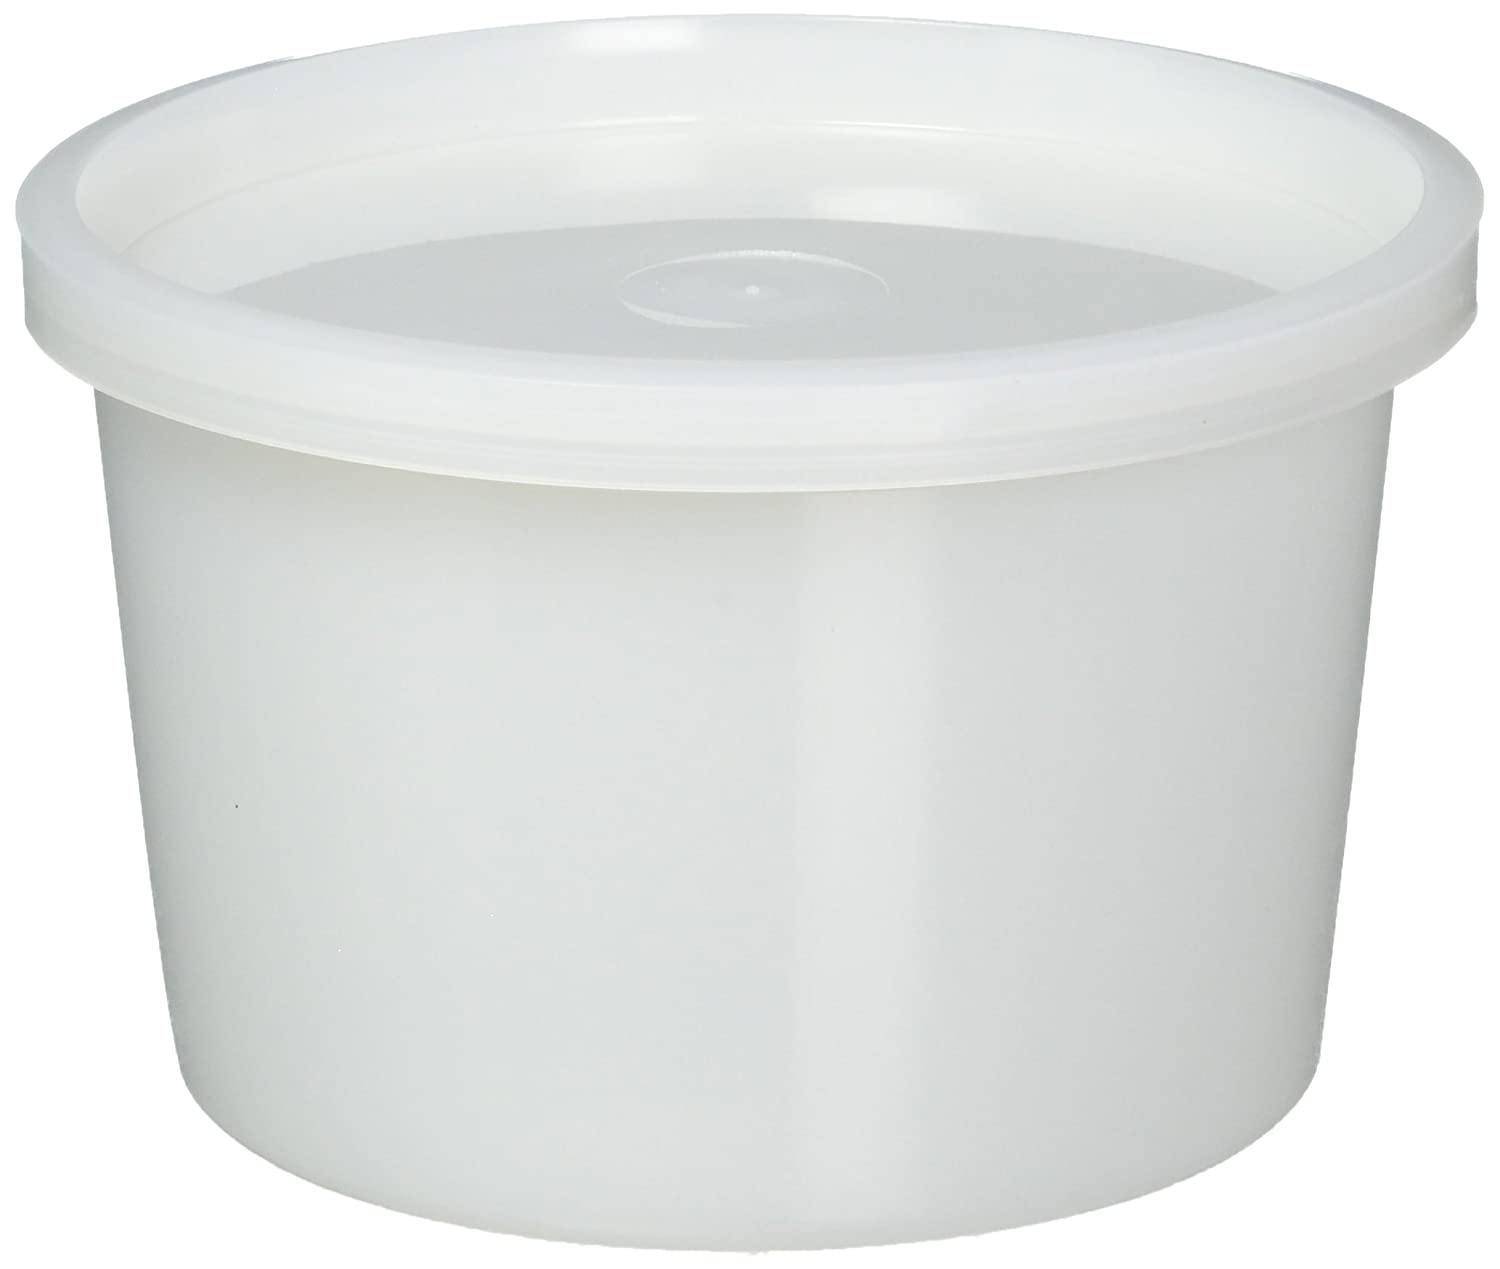 Vito's Famous Deli Container with Lid, 16 Ounce (Pack of 50) | Tight Seal | Freezer Safe